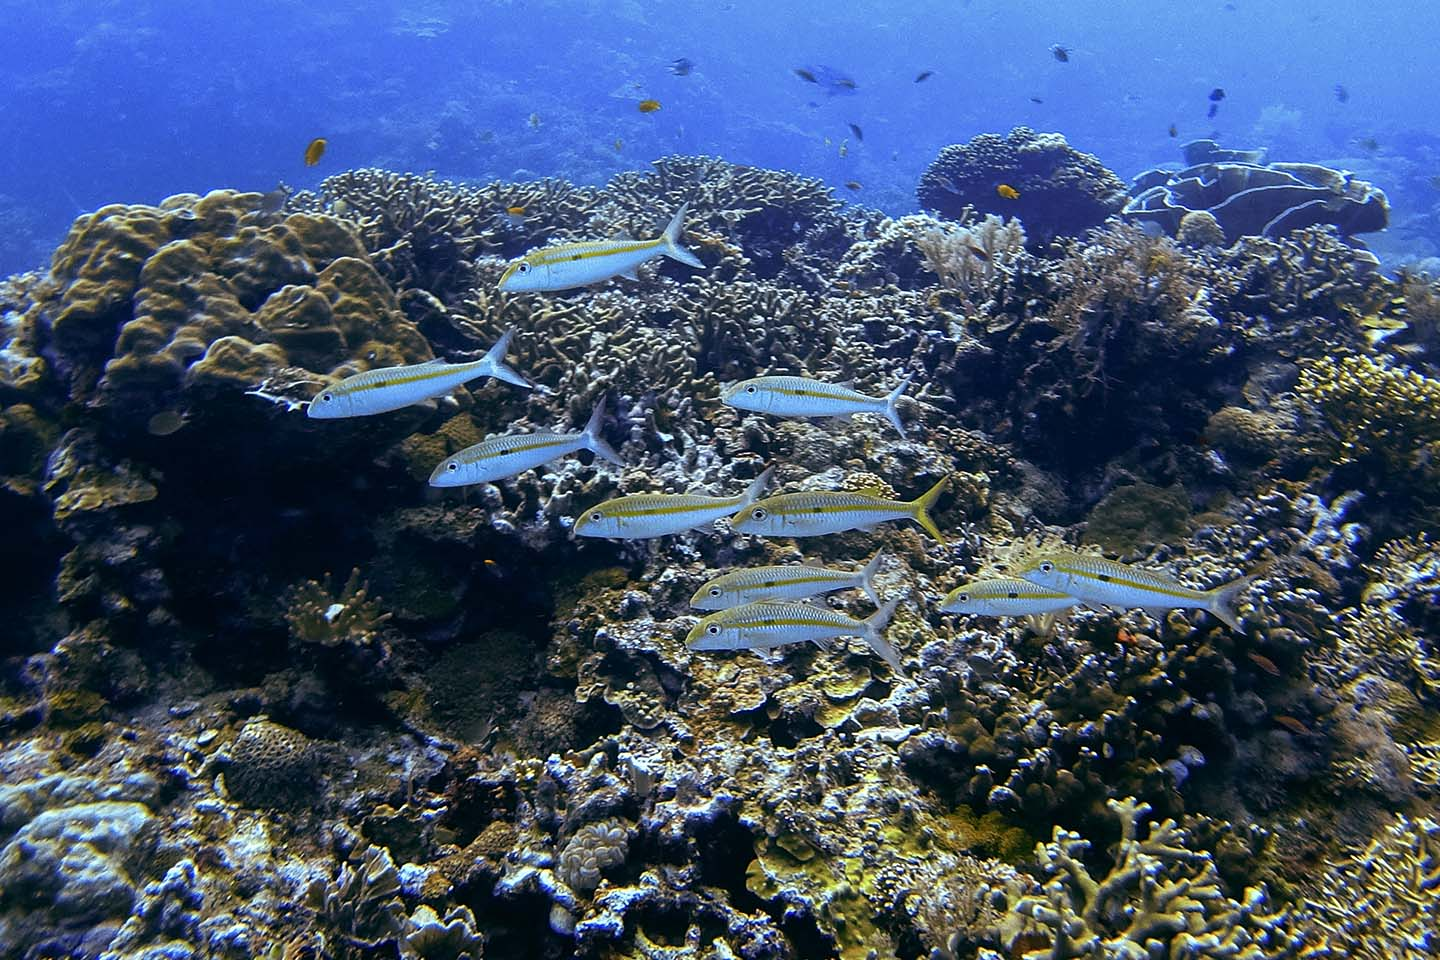 Scuba Diving in Siquijor: School of Fishes